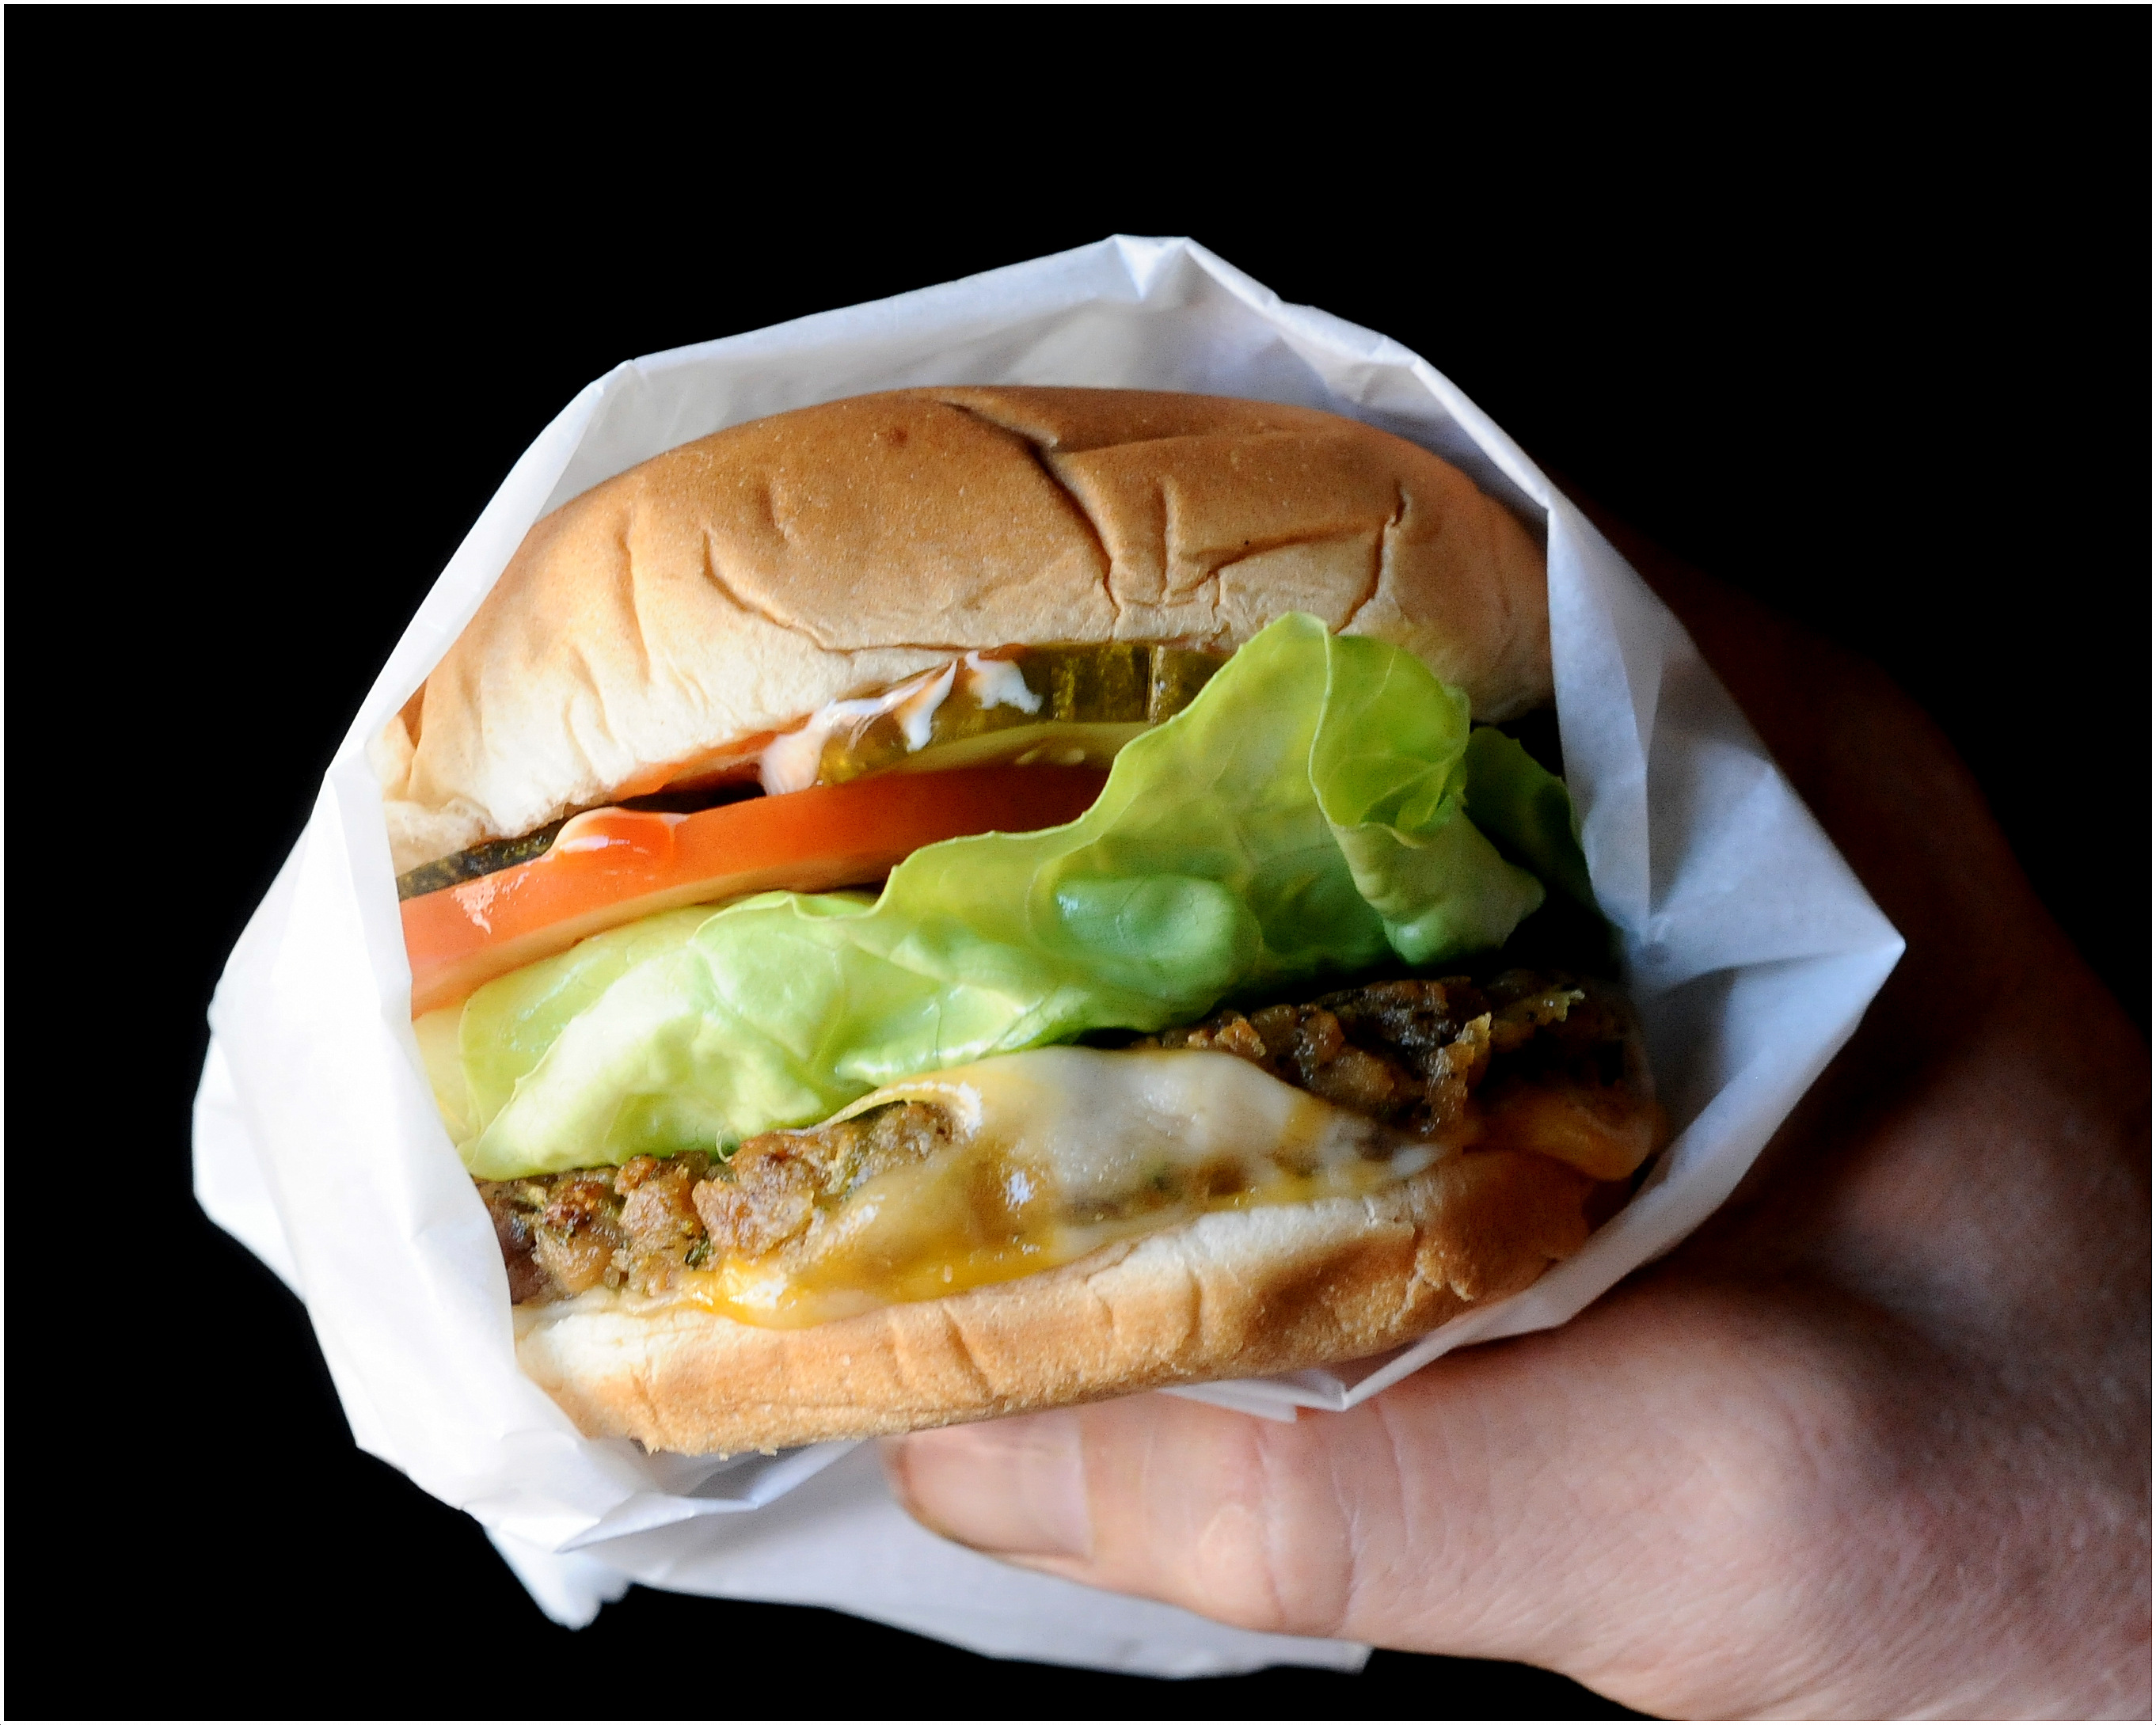 Where to find the best veggie burgers in Brooklyn